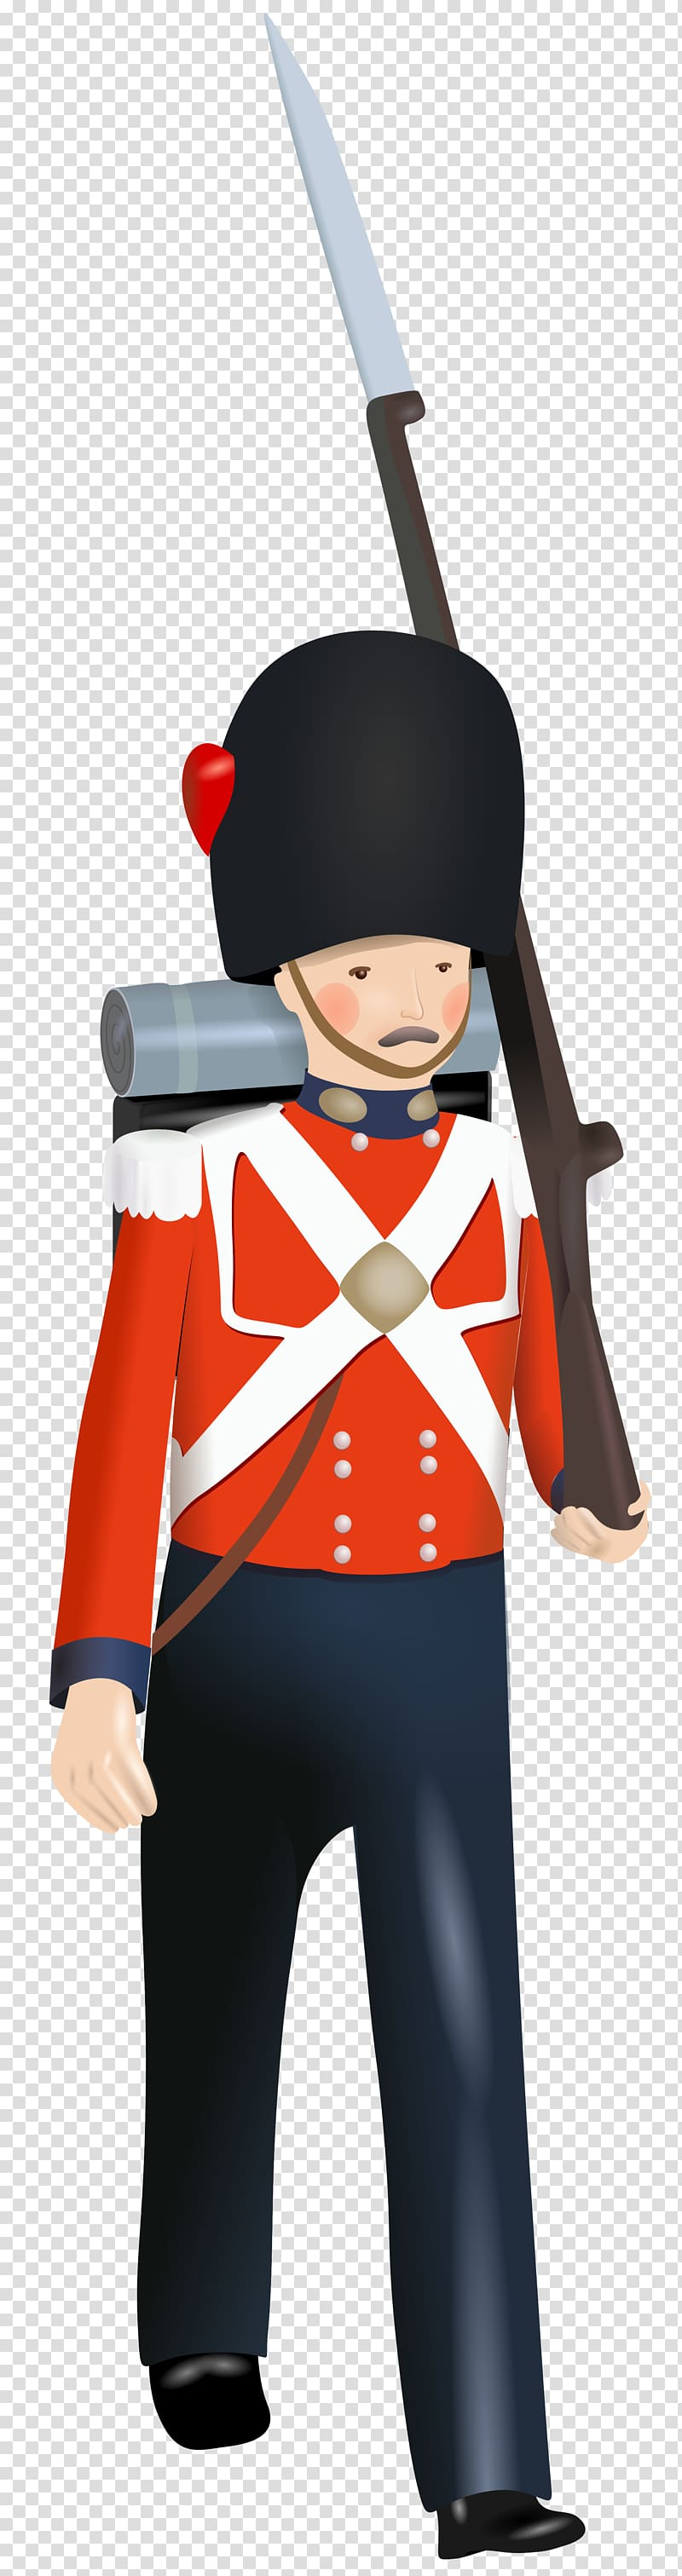 Toy soldier Tin soldier, english transparent background PNG.